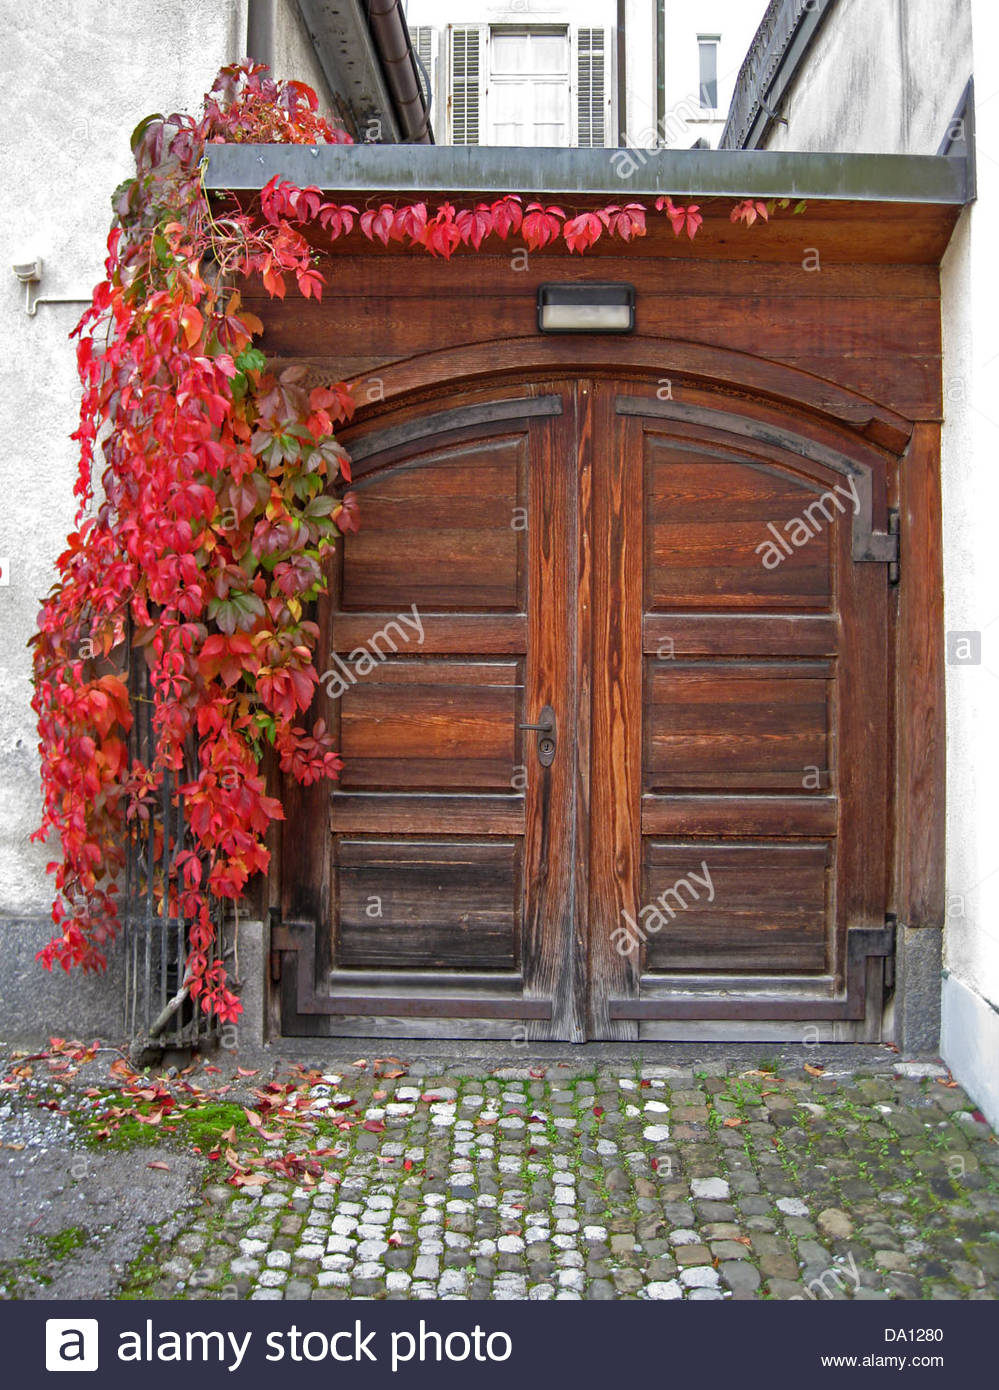 Beautiful old wood door with red flowers stock photo for Beautiful wooden doors picture collection